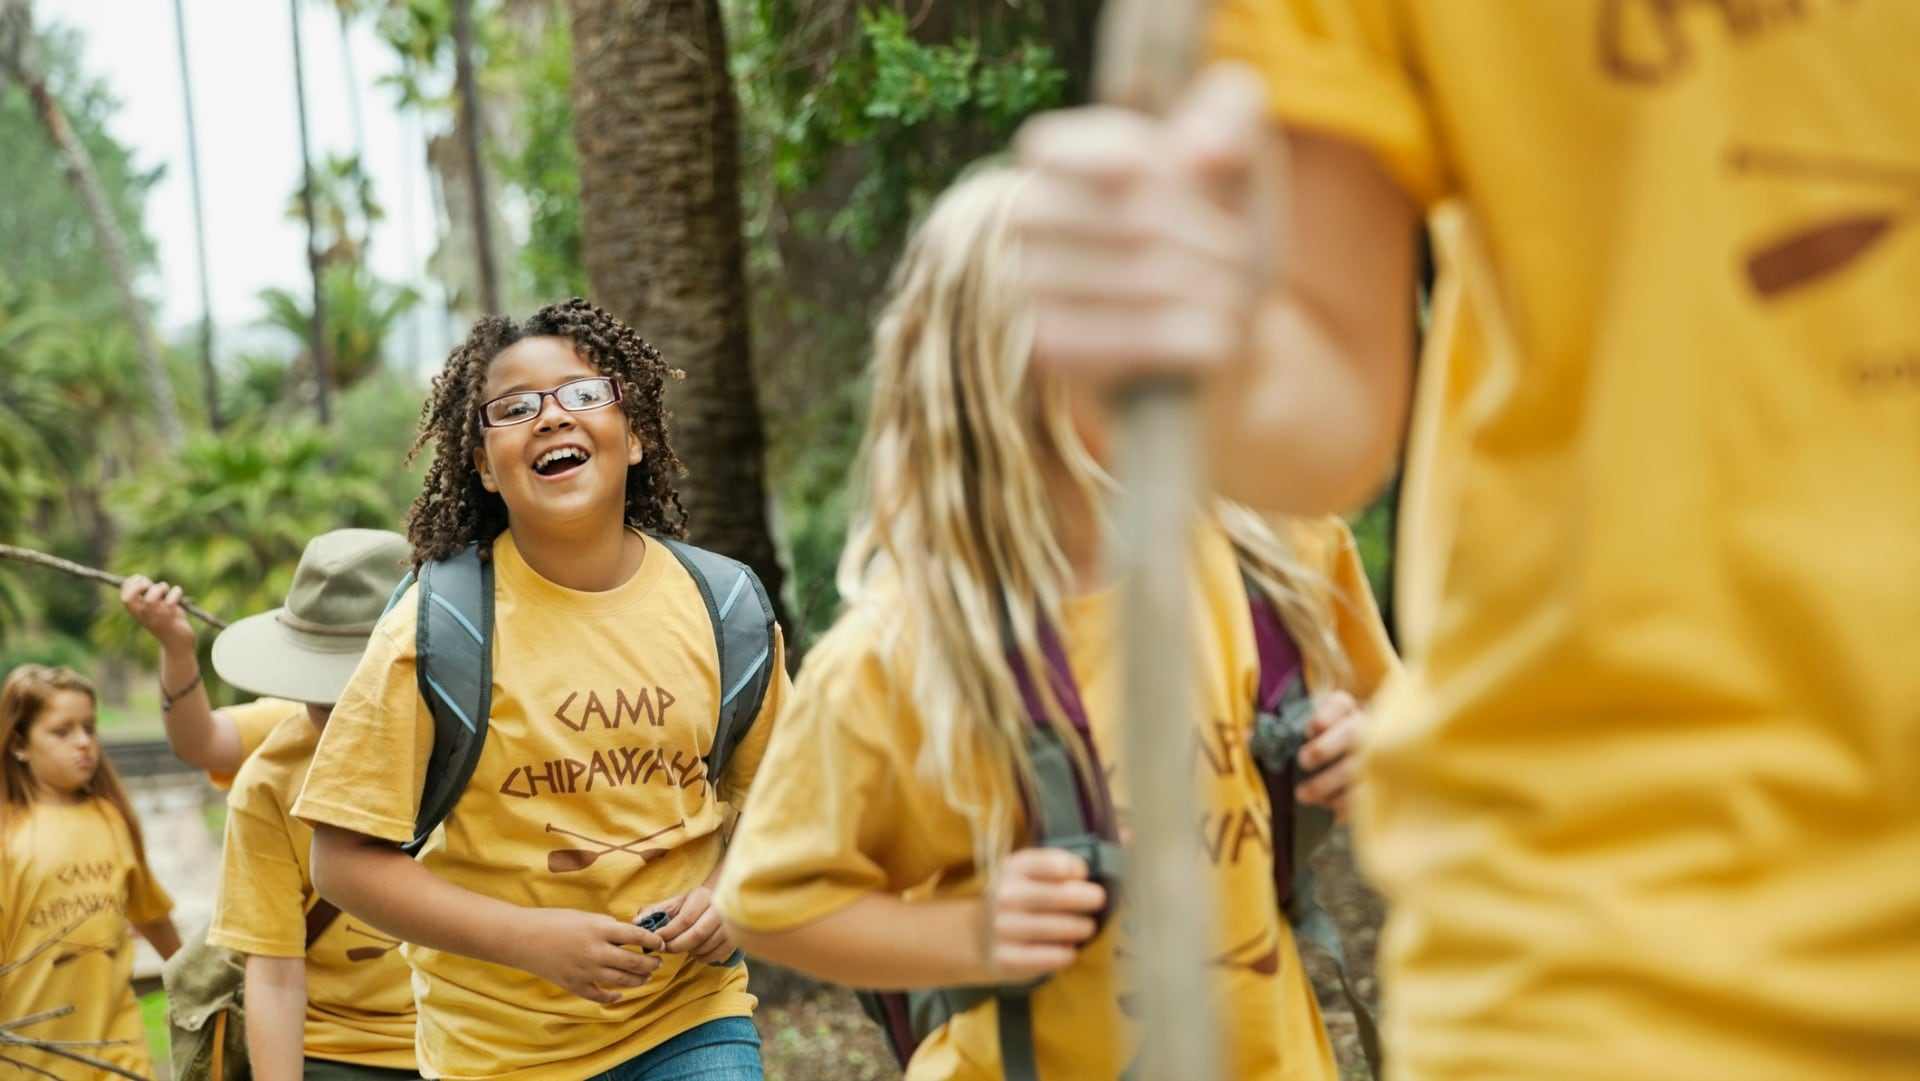 The Ultimate Summer Camp Packing Checklist Sheknows